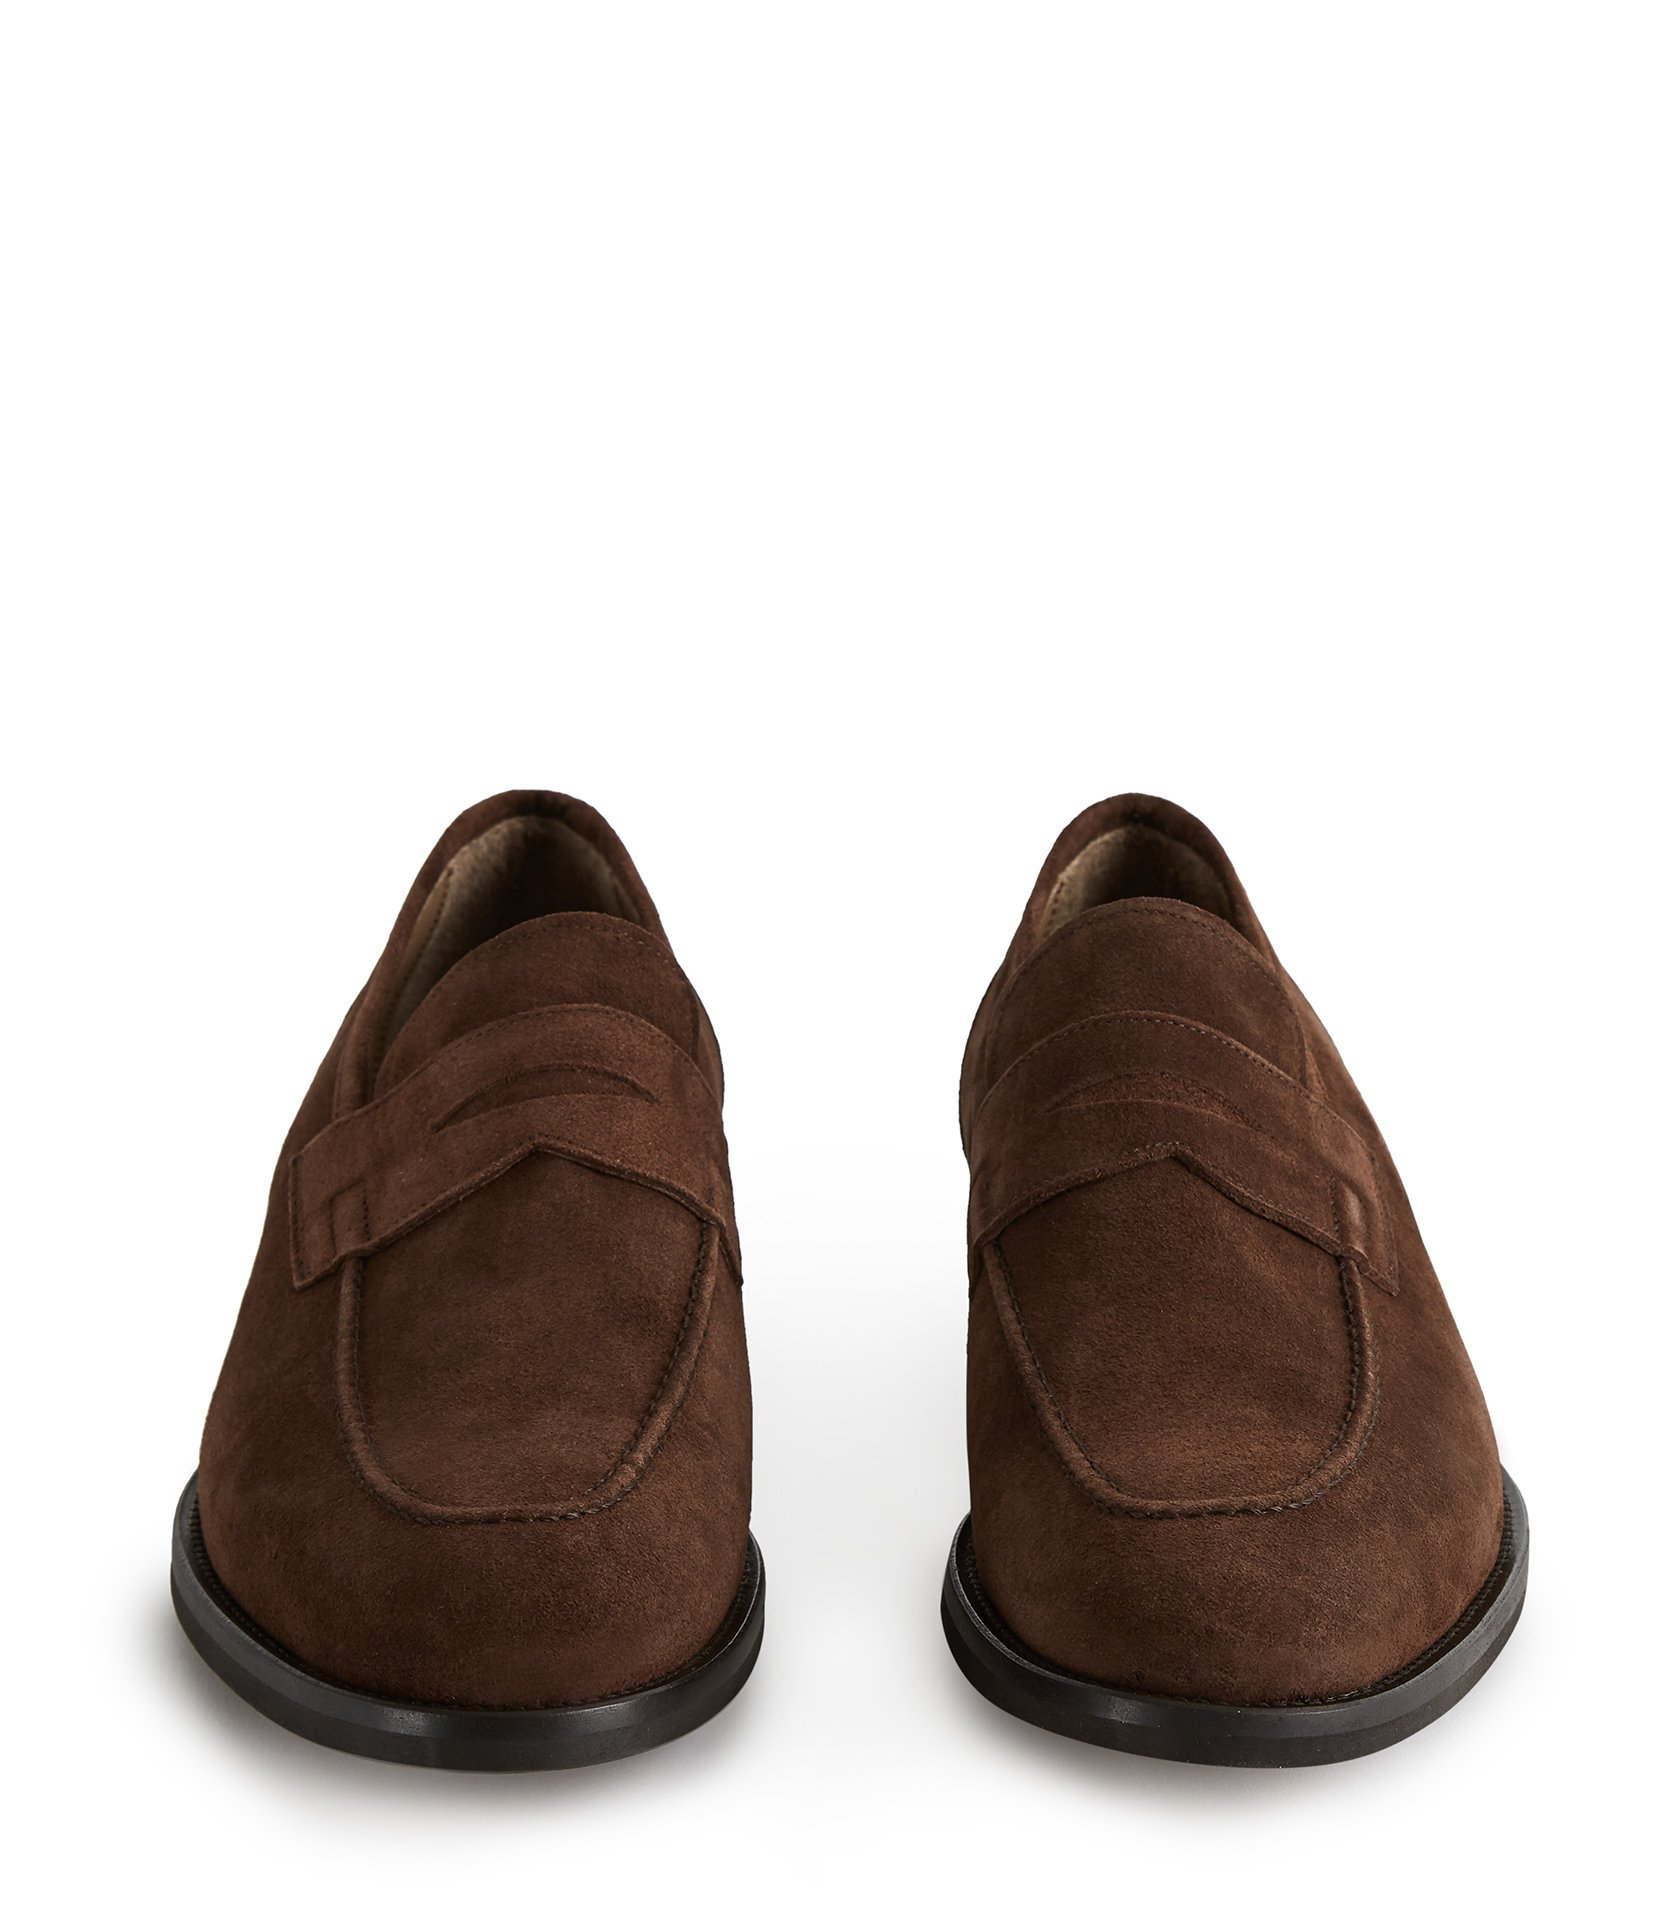 Reiss Brown Shoes